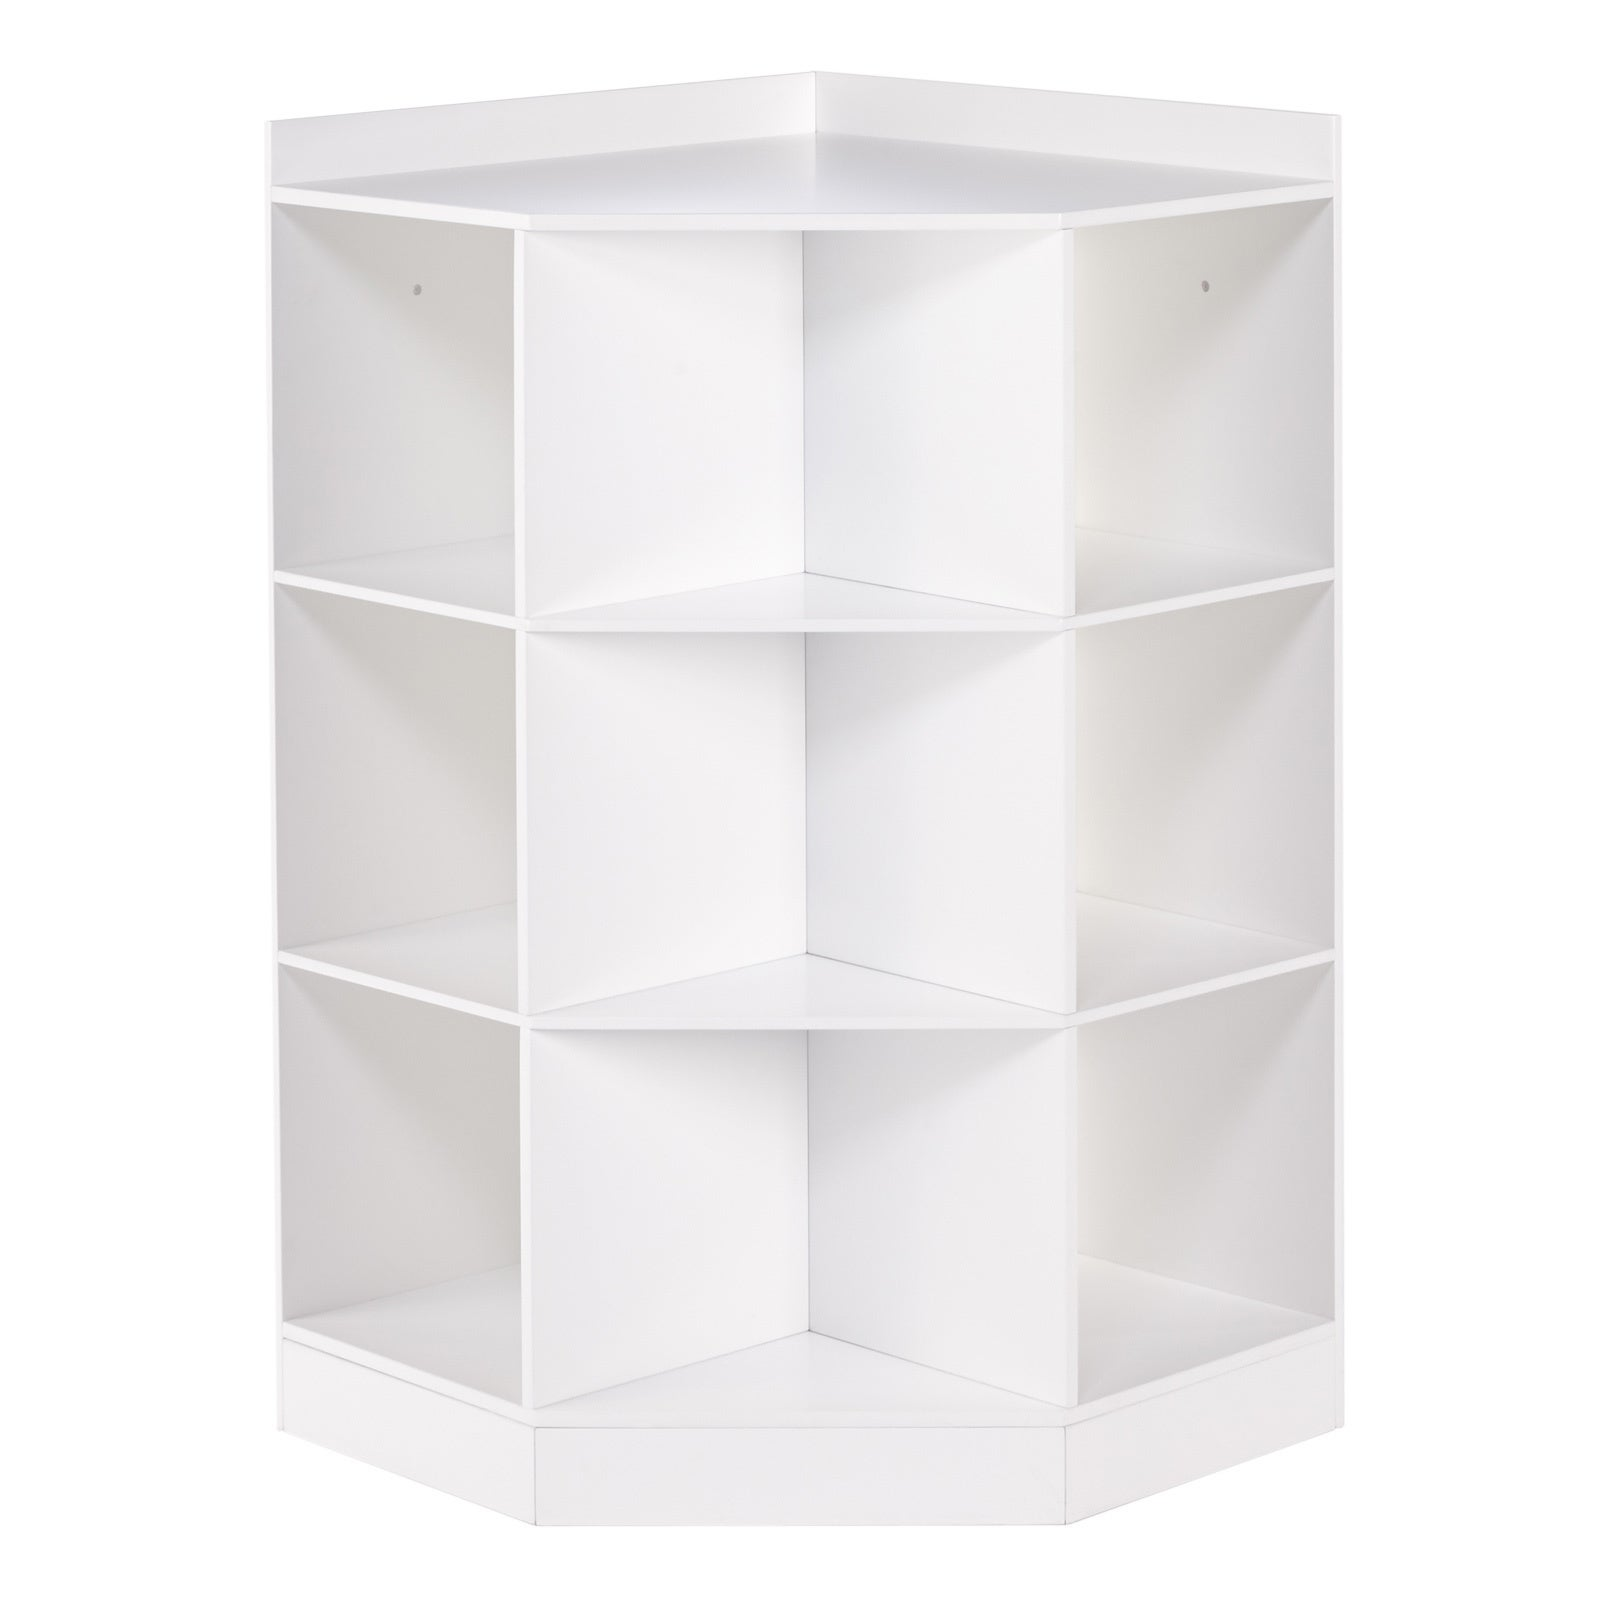 Buy White Bookcases And Shelves Kids Storage Toy Boxes Online At Overstock Com Our Best Kids Toddler Furniture Deals